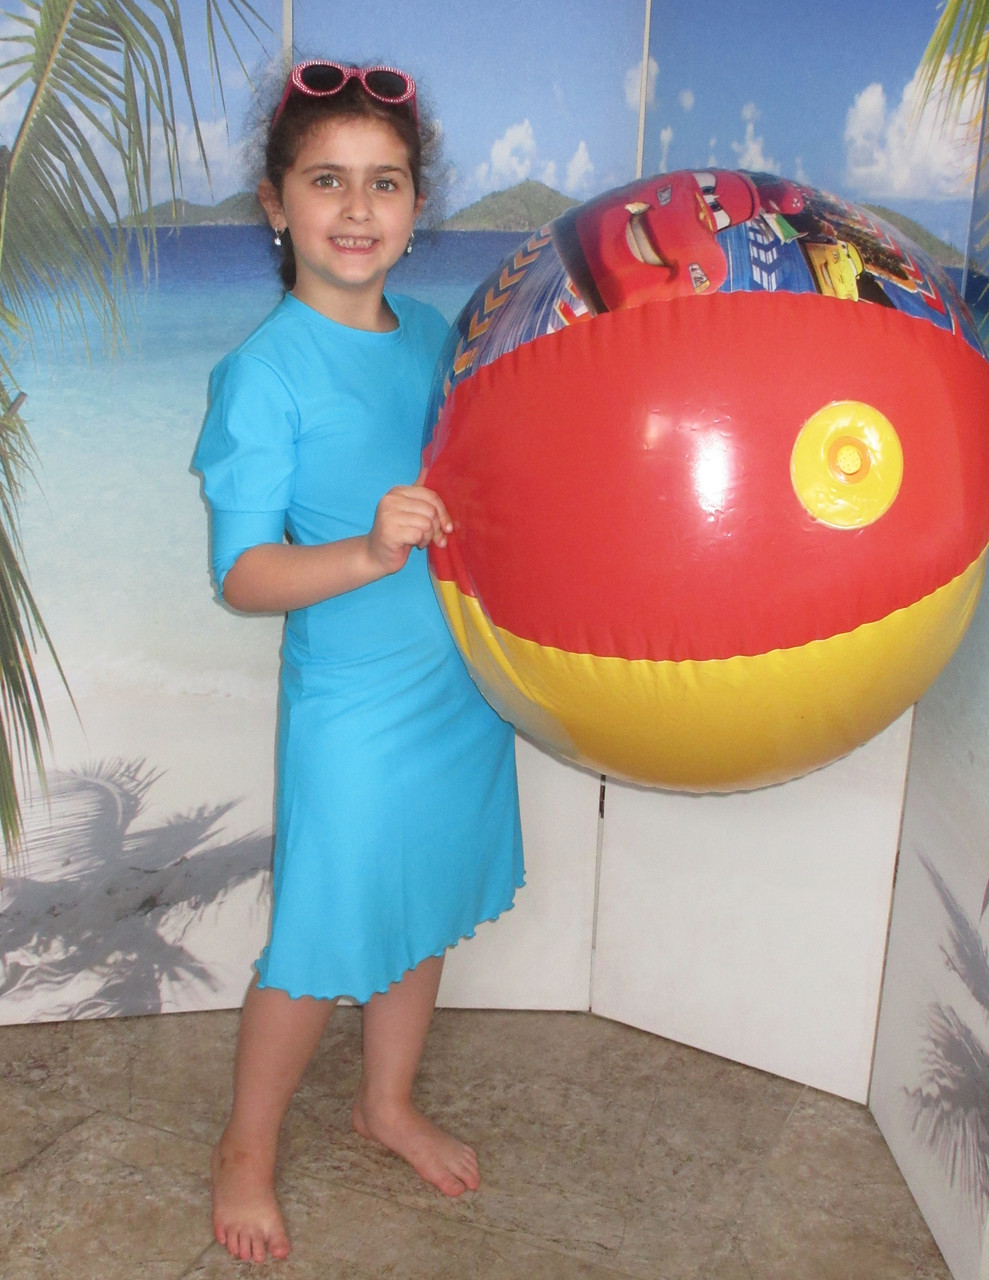 8be43eb22b4d8 ... Style 2600c - Girls modest Swim Dress / Cover Up. banner. Image 1